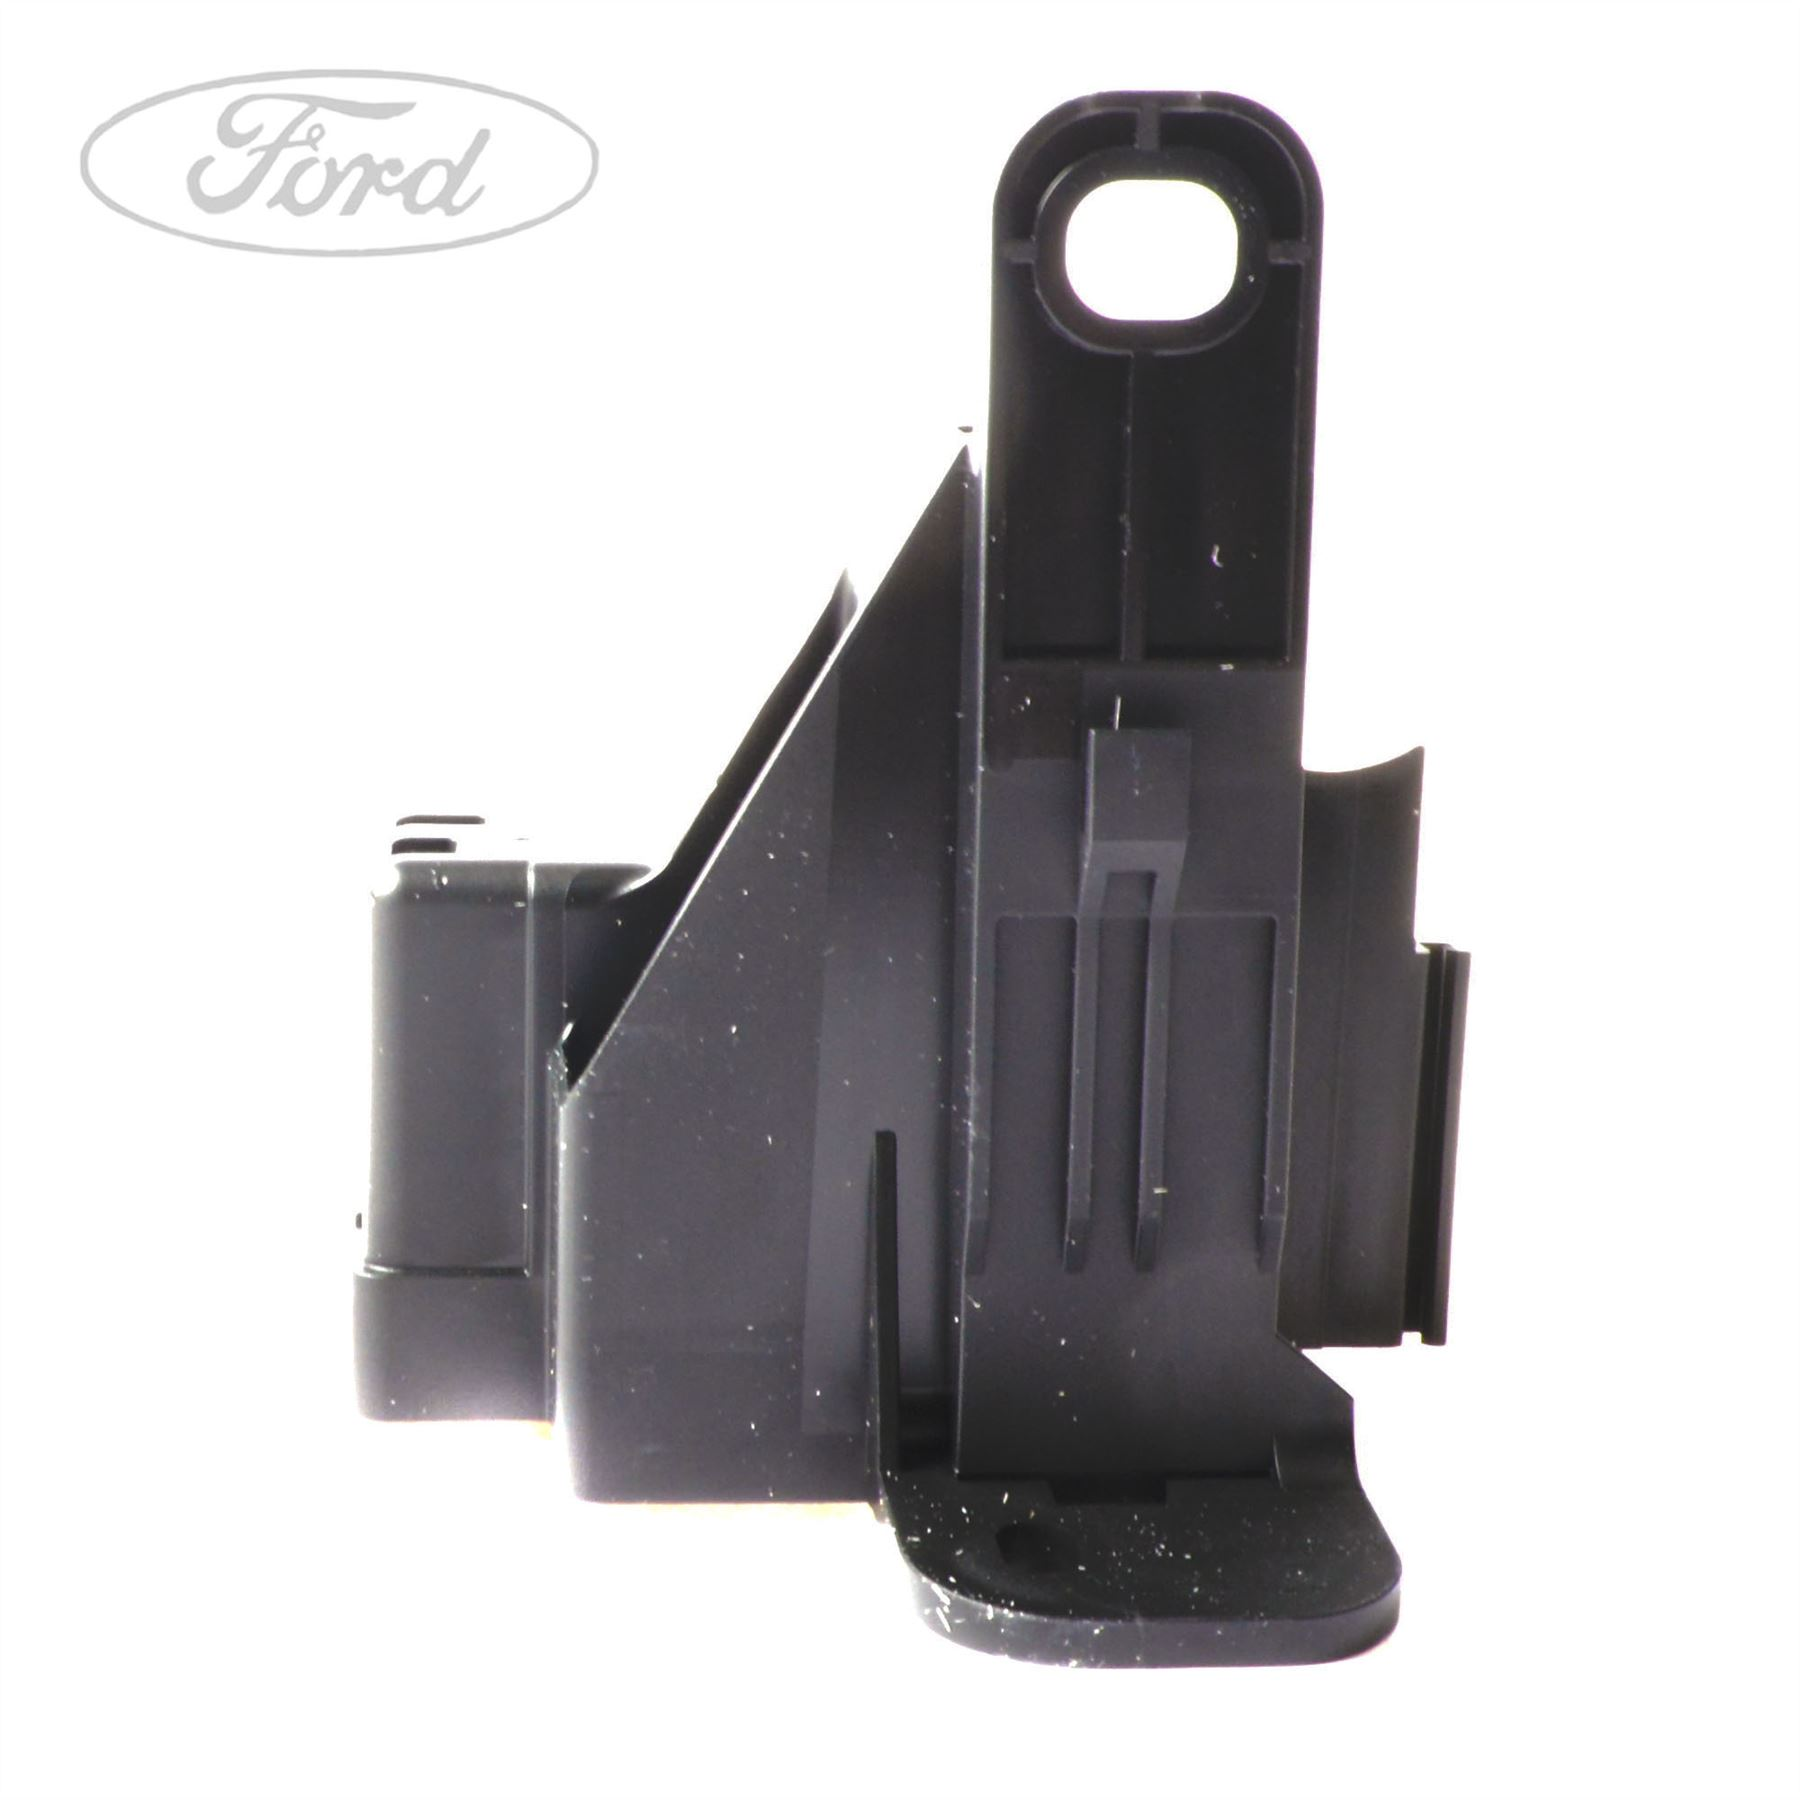 6a7e70fb 37b5 4689 b609 d5b403cdcbeb genuine ford fiesta mk7 fuse box cover 1857520 ebay fuse box covers ireland at crackthecode.co